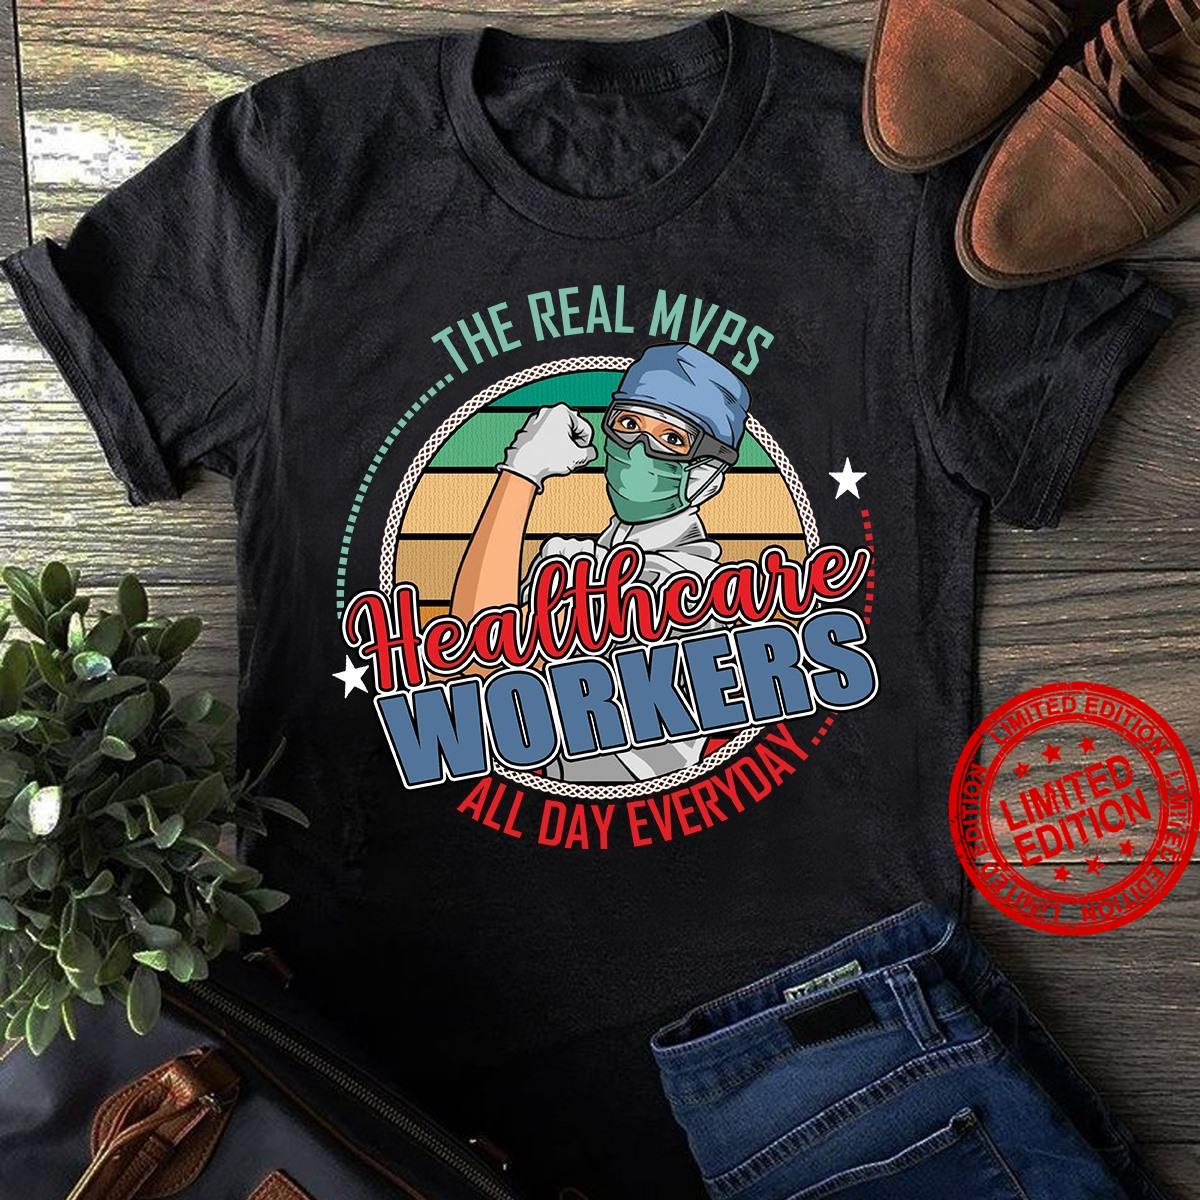 The Real Mvps Healthcare All Day Everyday Shirt